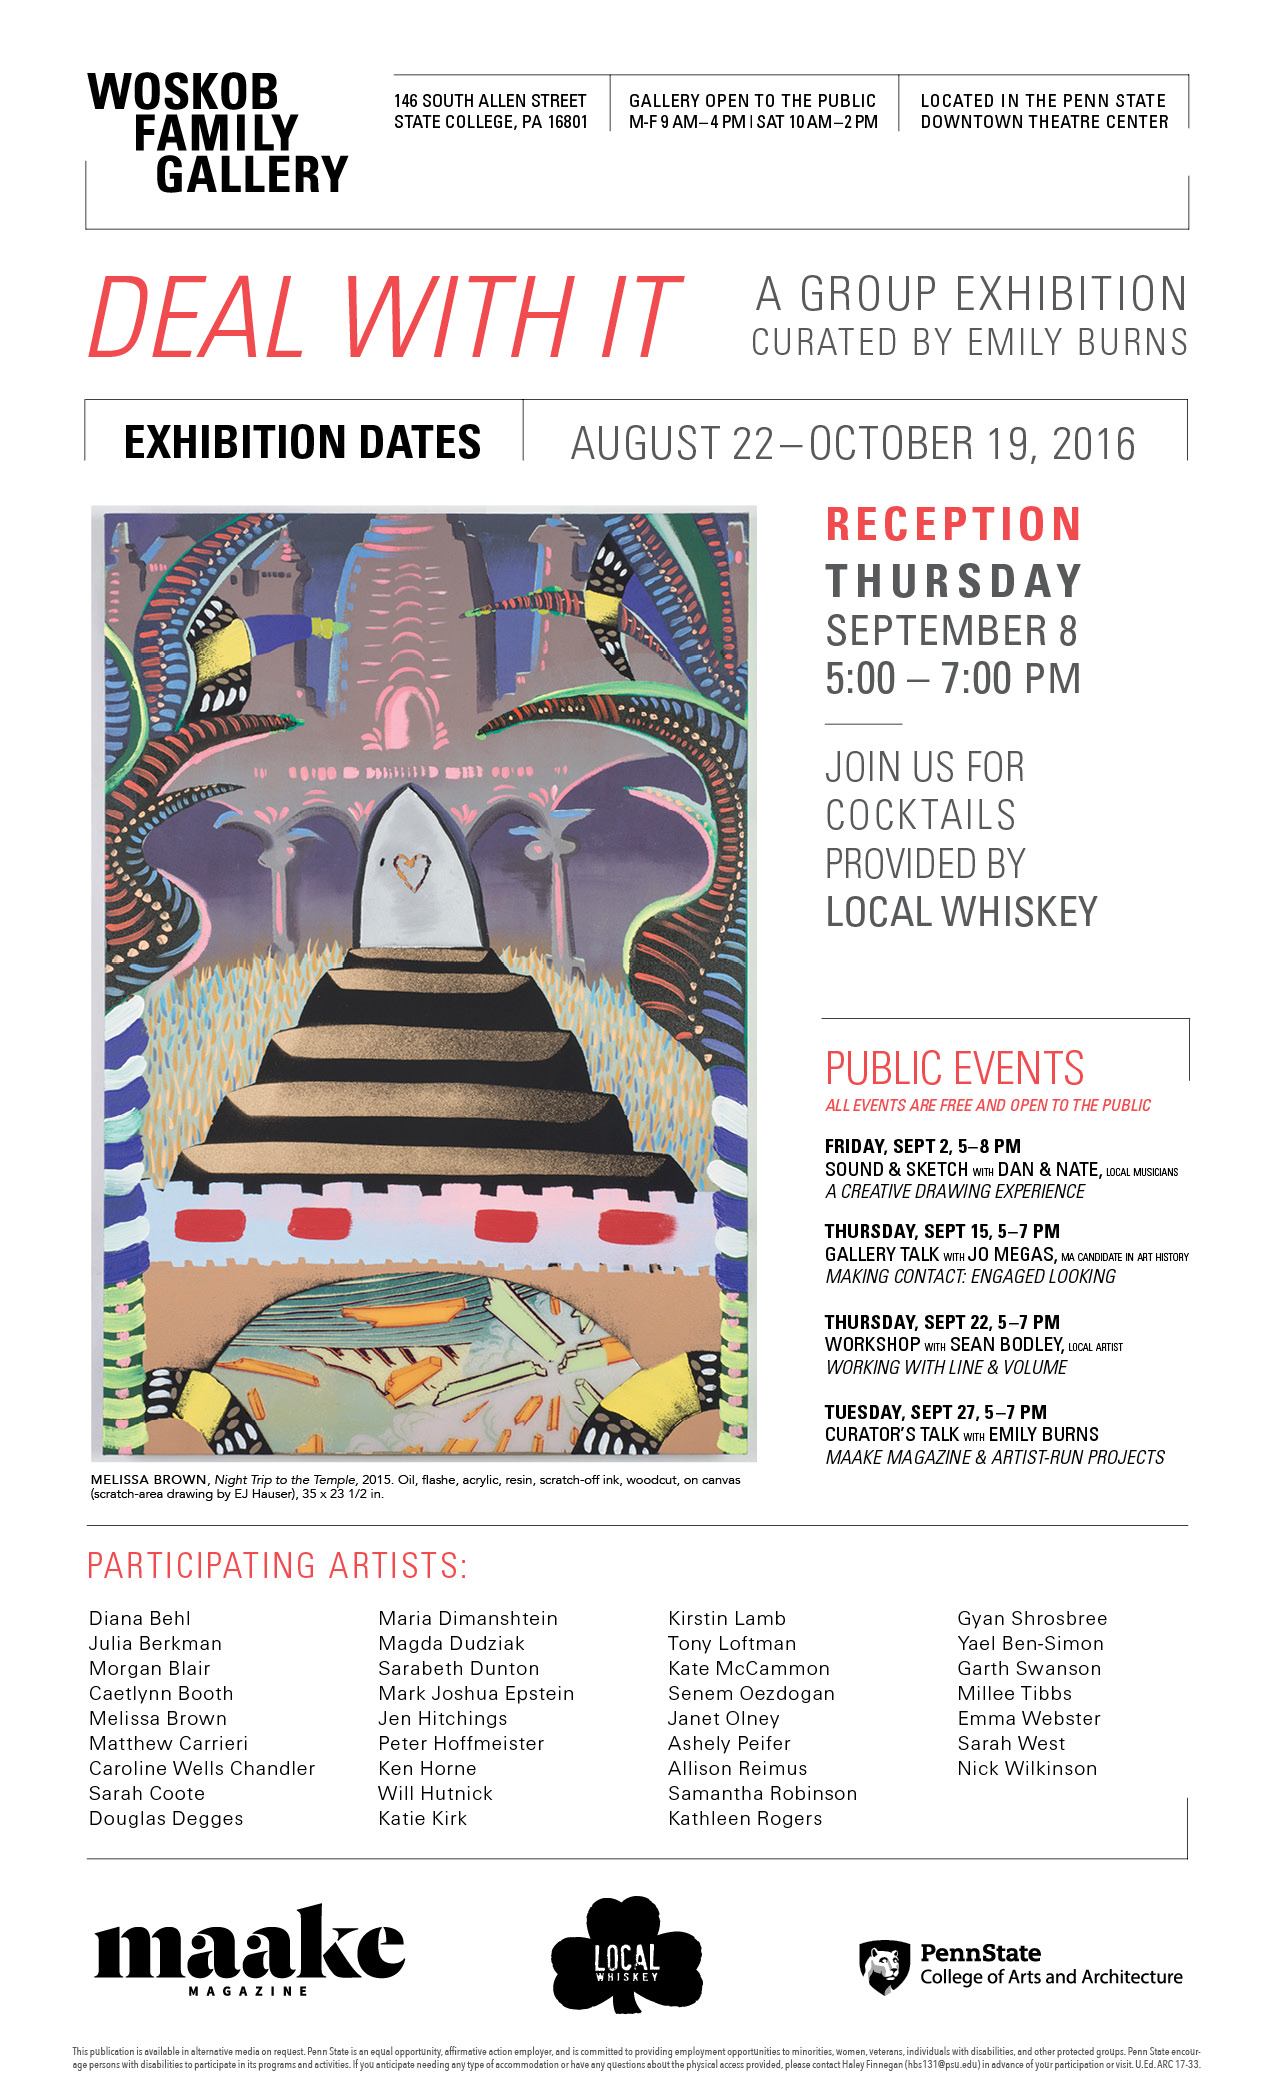 DEAL WITH IT - Curated by Emily Burns, Maake MagazineA group exhibition held at The Woskob Family gallery in State College, PA from August 22–October 19,2016